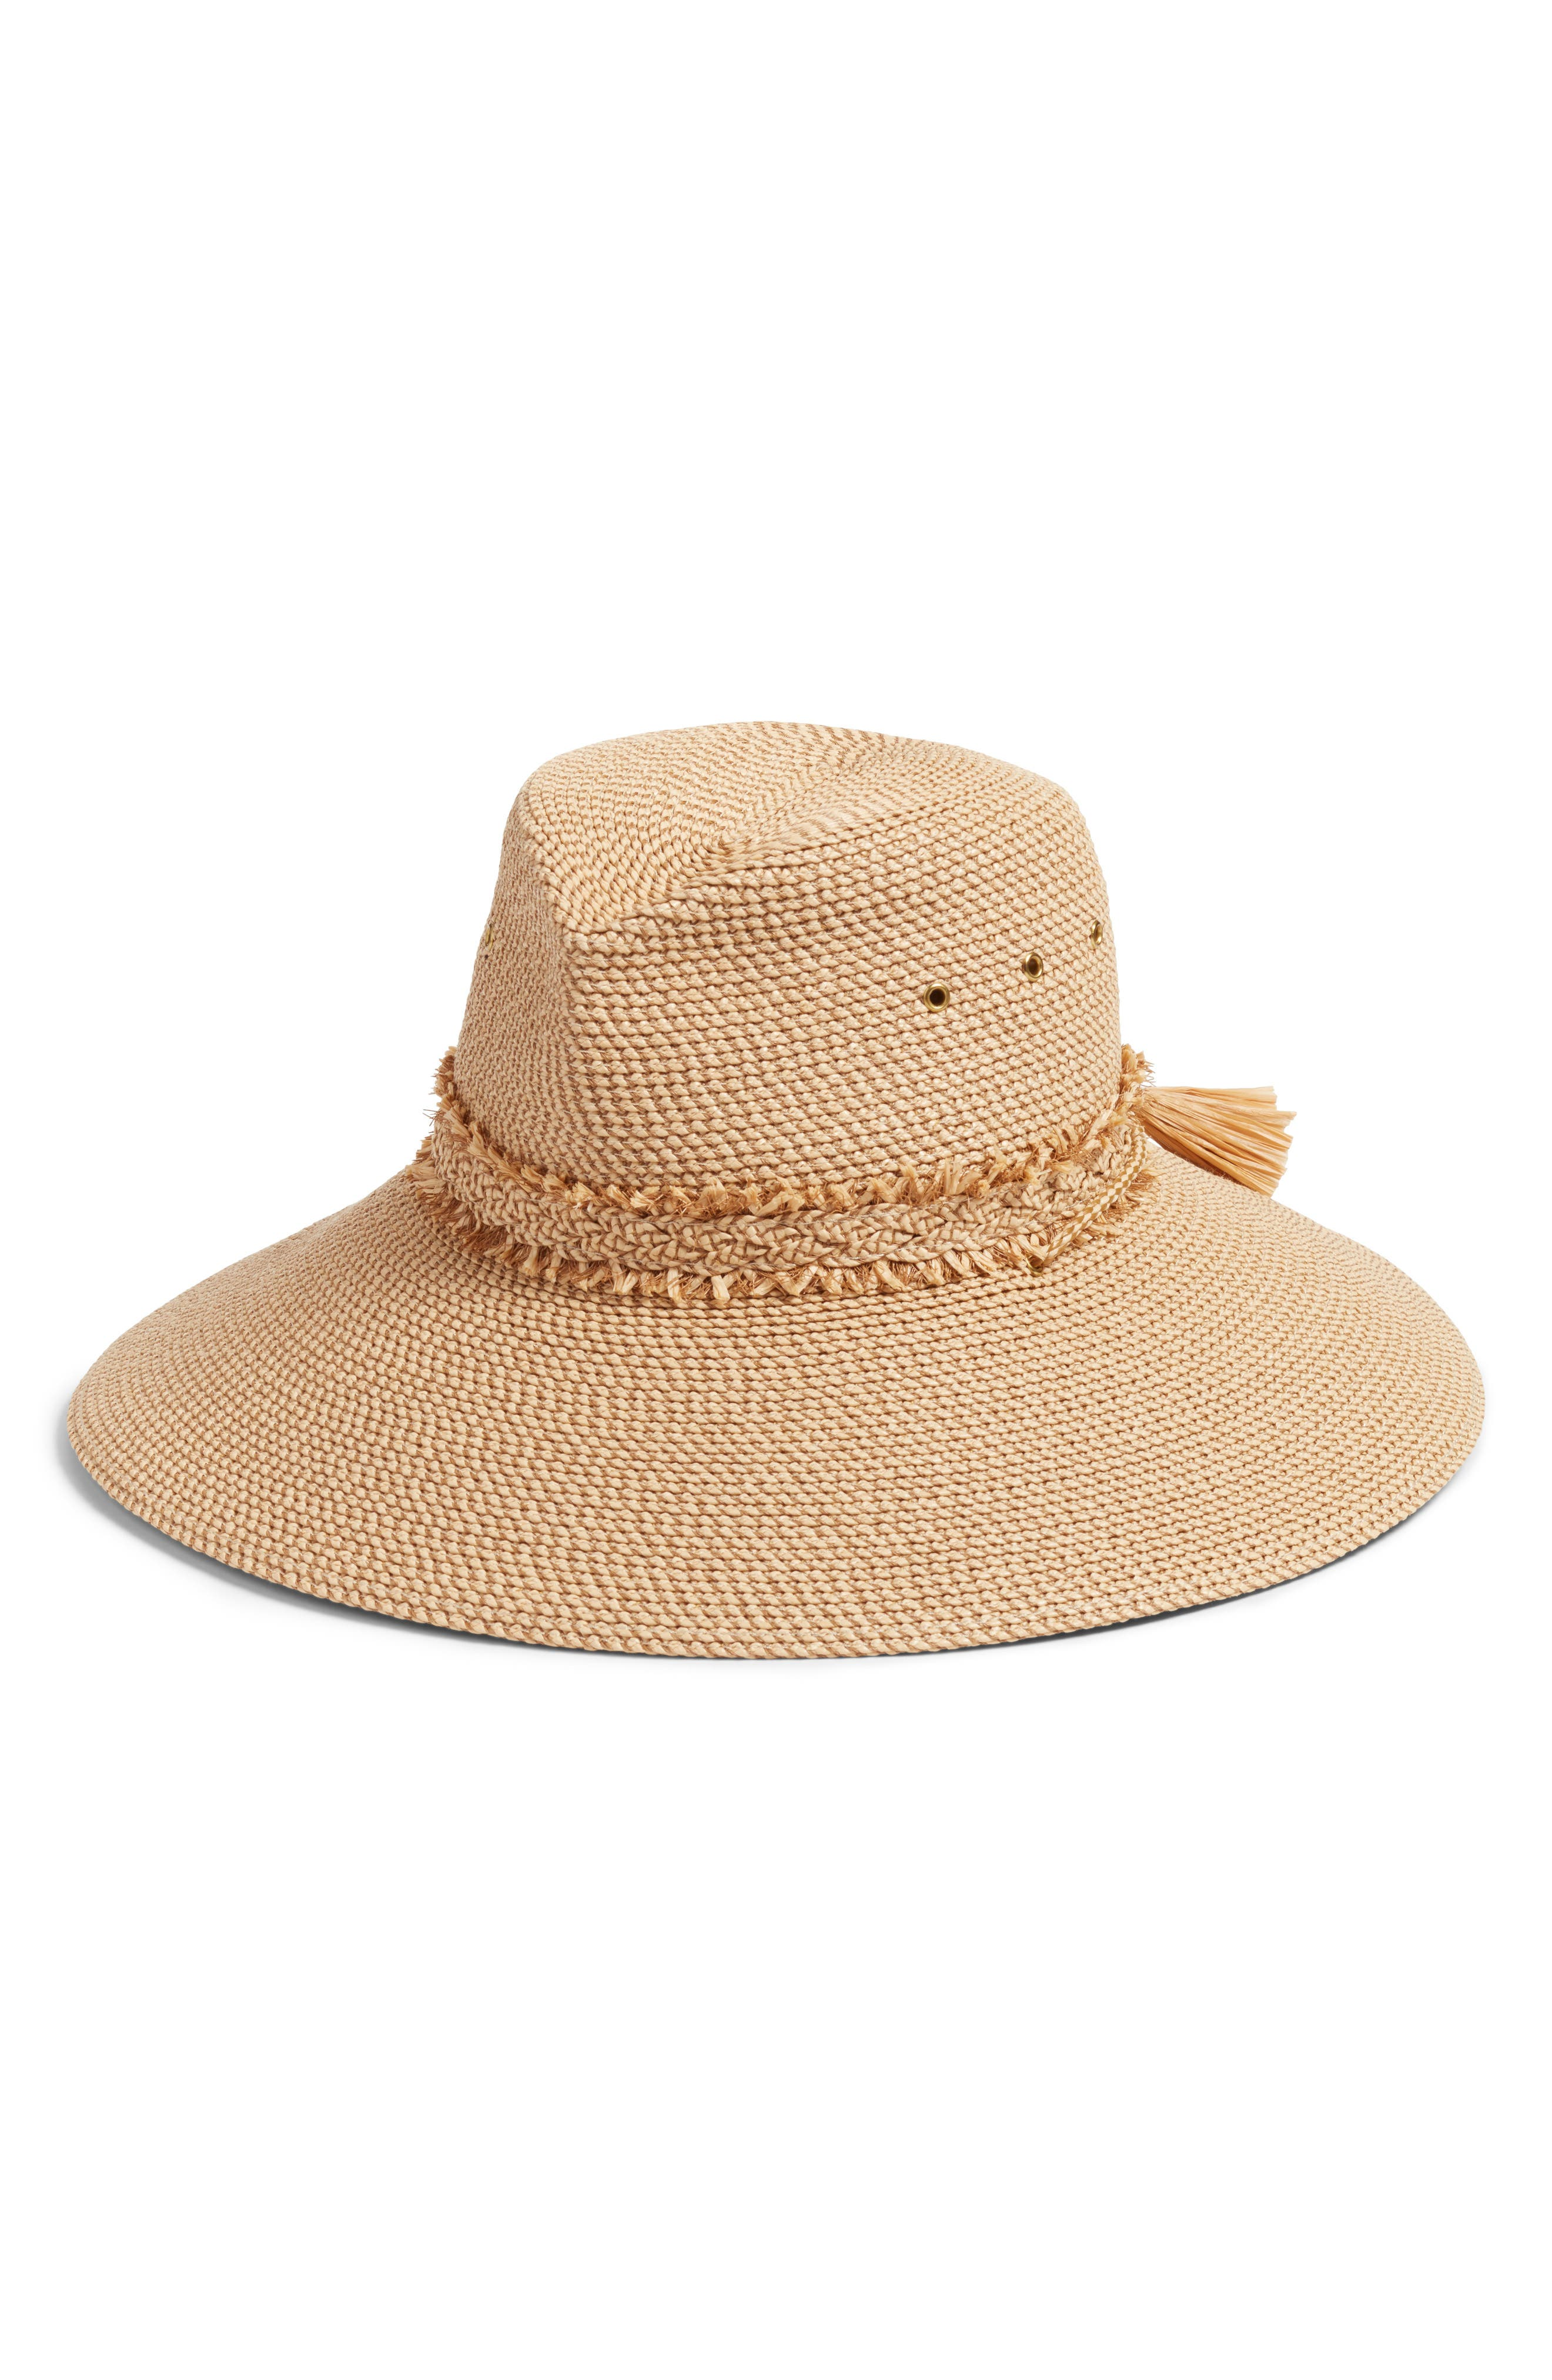 Voyager Squishee<sup>®</sup> Sun Hat,                             Main thumbnail 1, color,                             Peanut